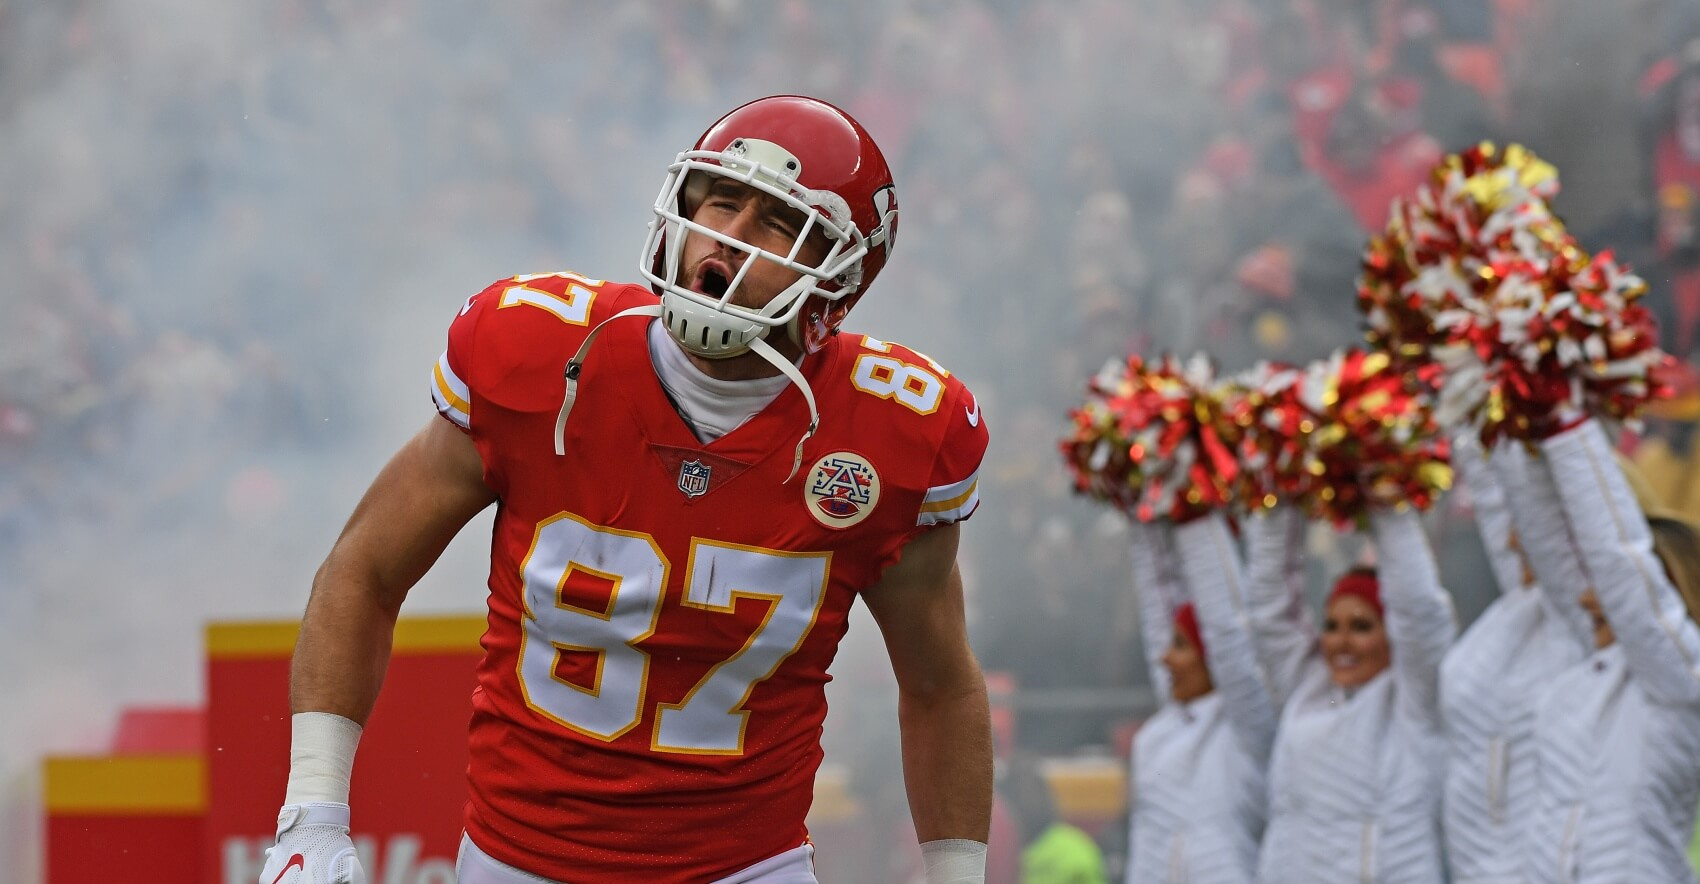 Fantasy Football: How To Attack the TE Position In DFS